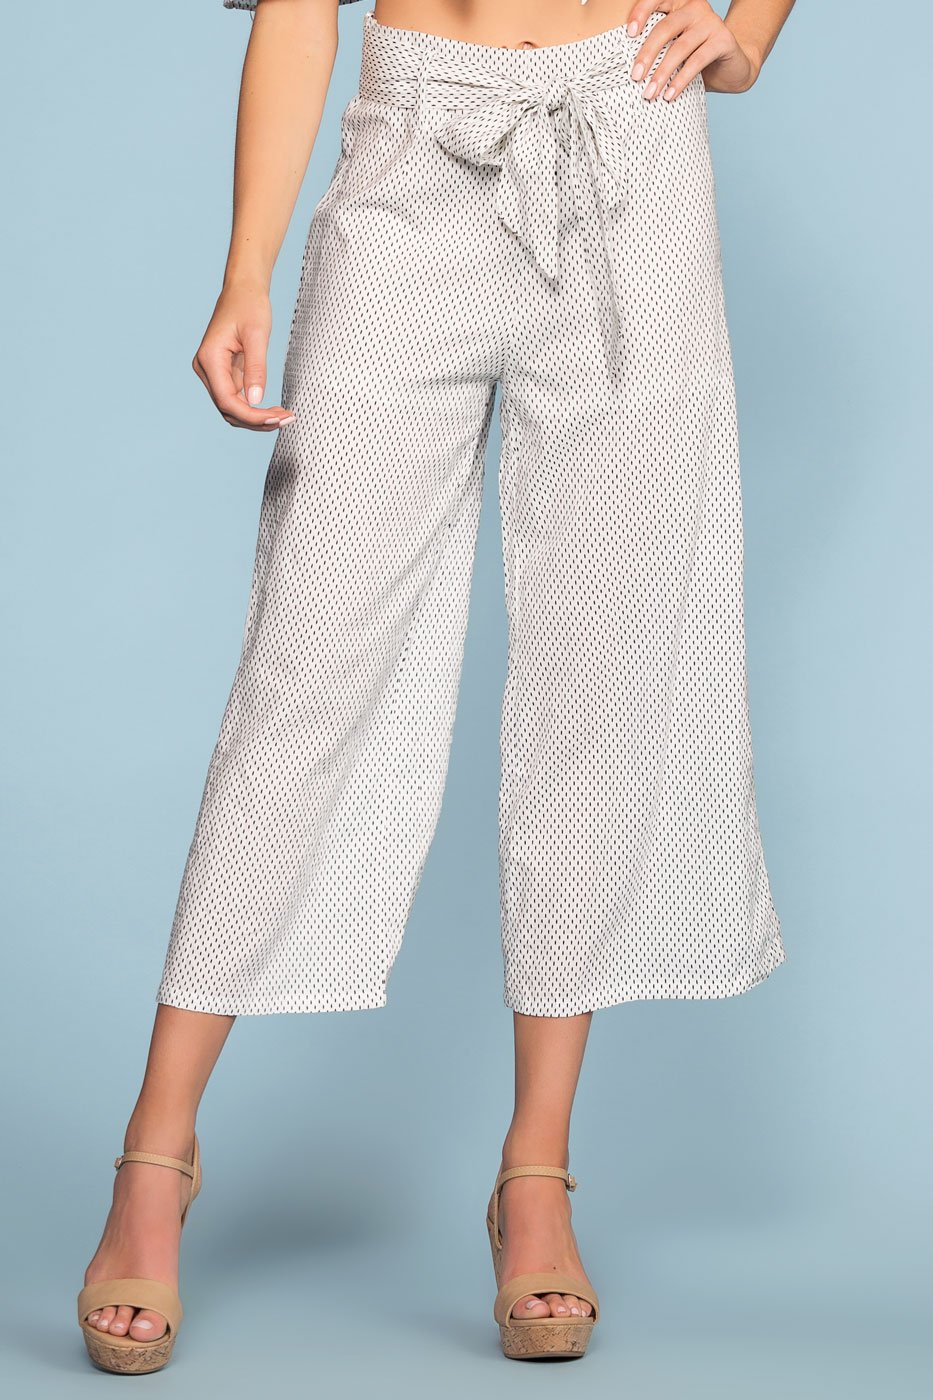 Pants - Calypso High Waist Pants - White